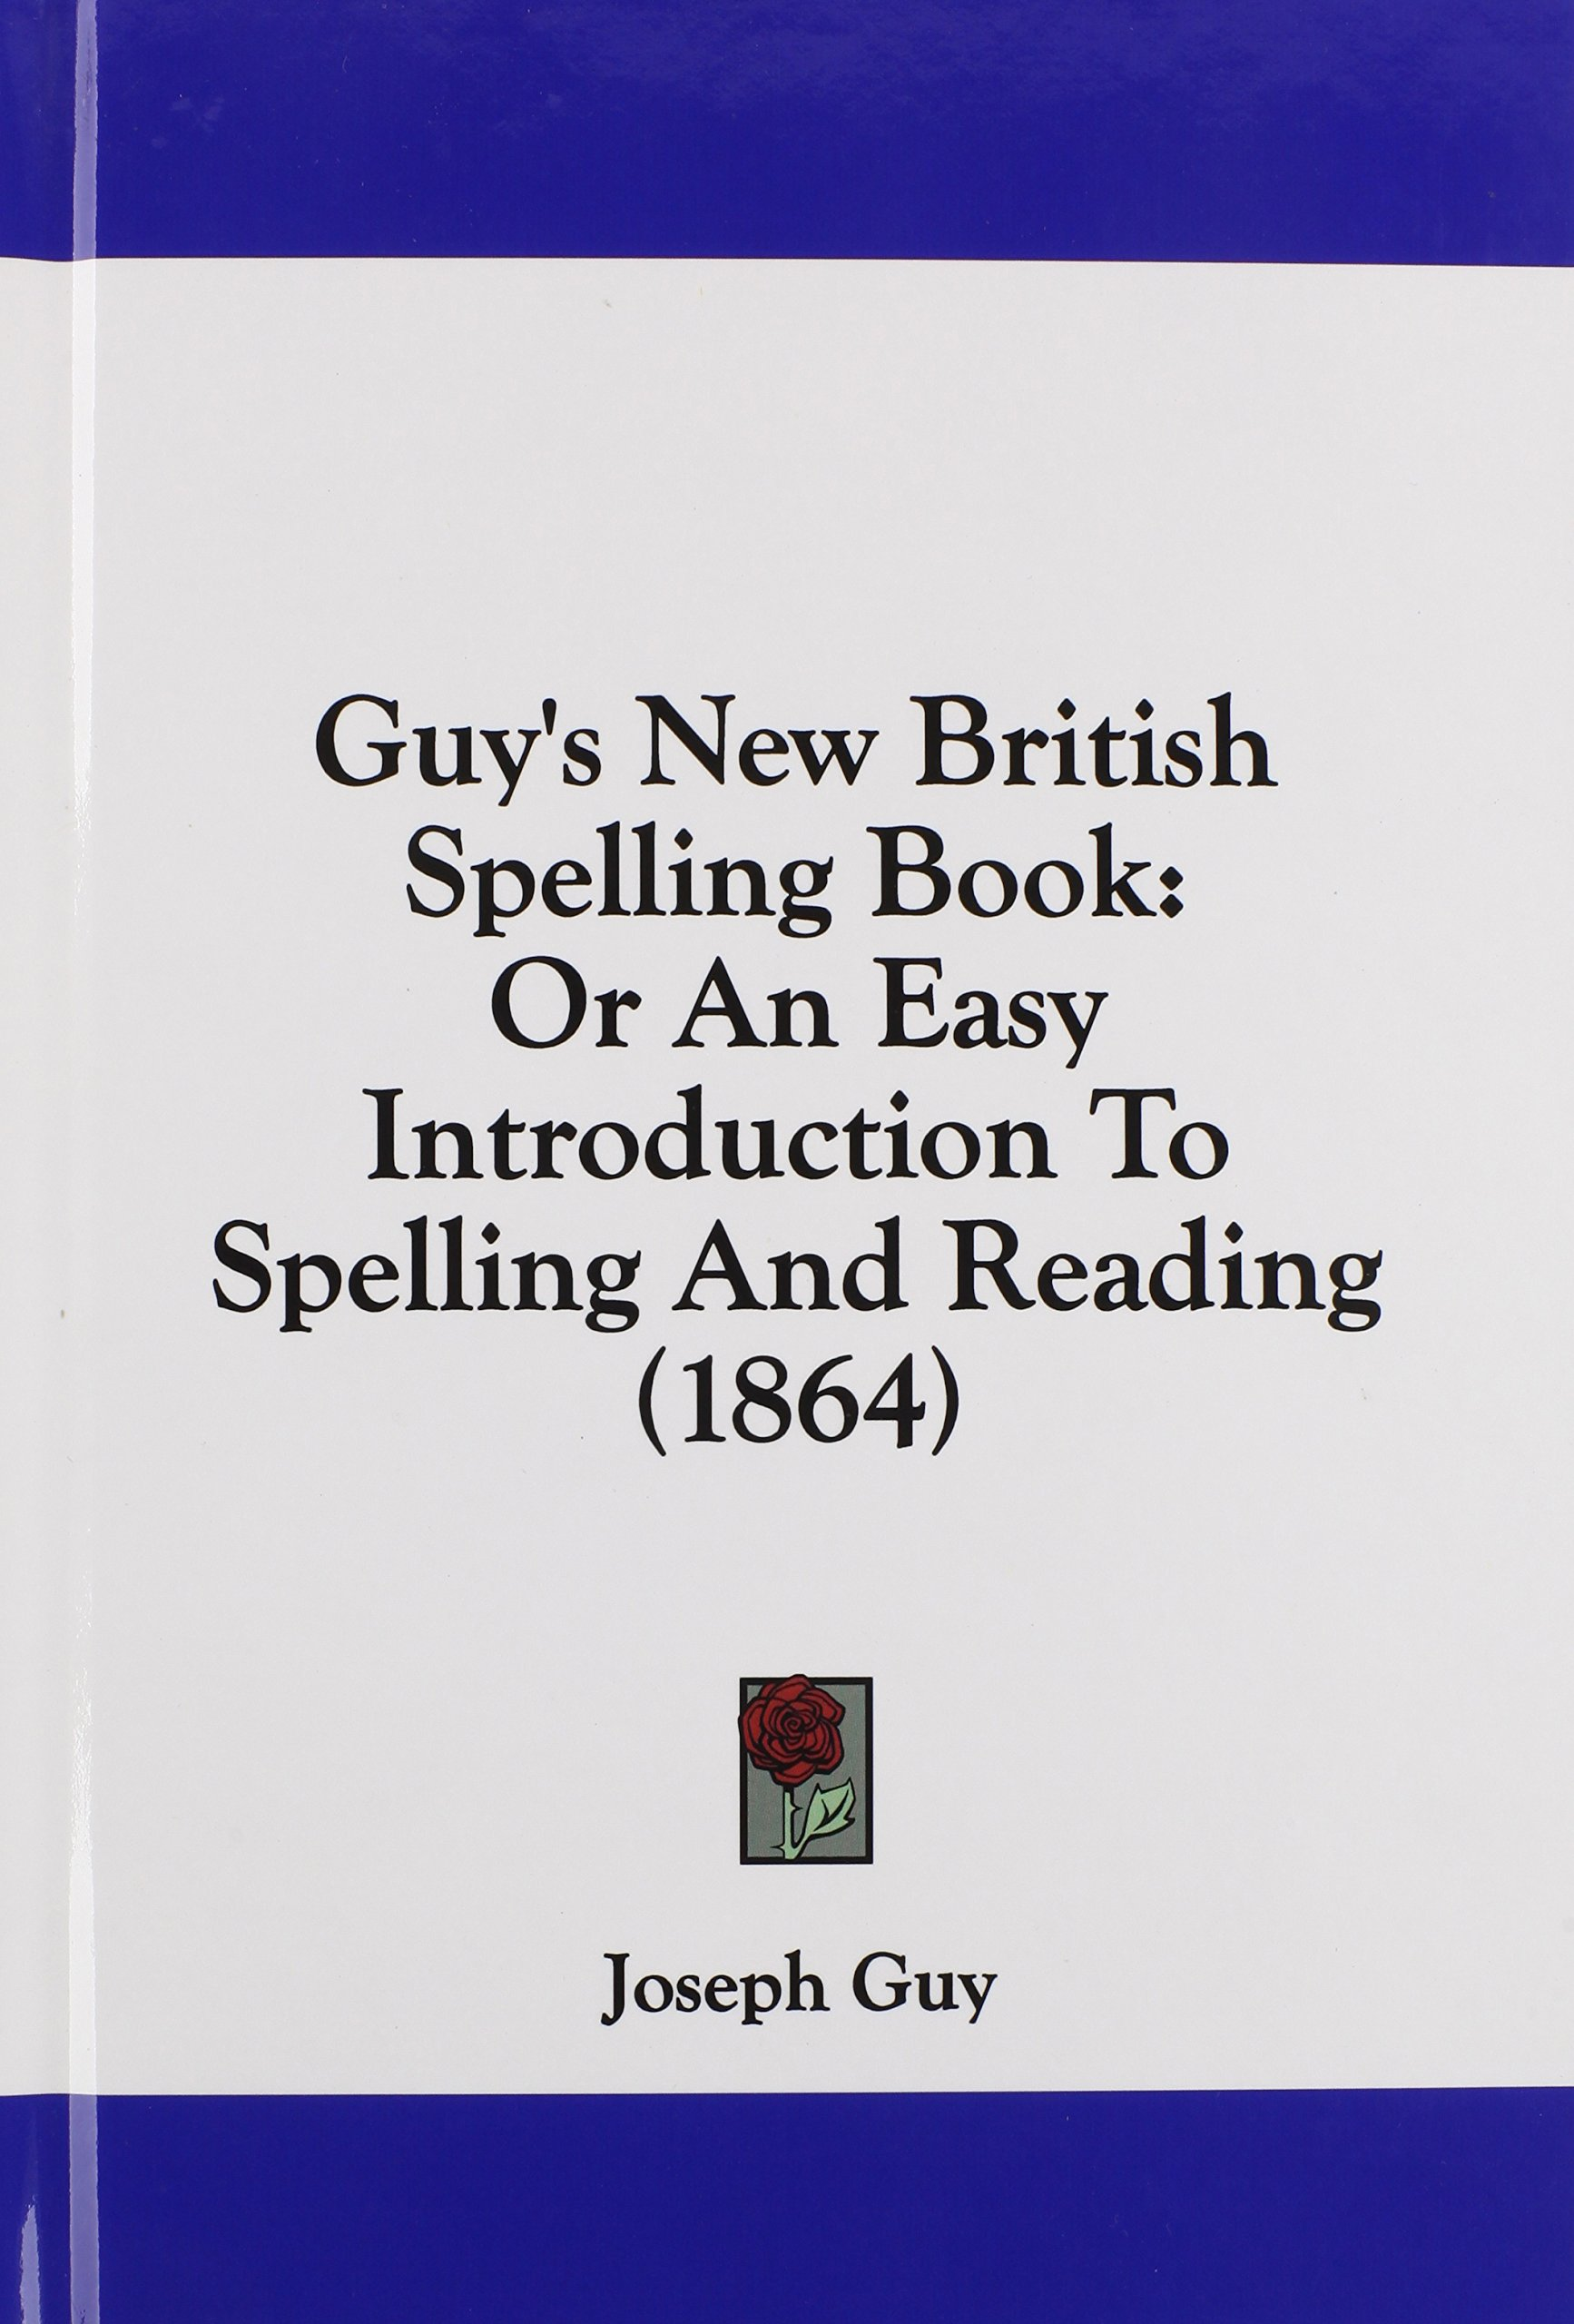 Guy's New British Spelling Book: Or An Easy Introduction To Spelling And Reading (1864) pdf